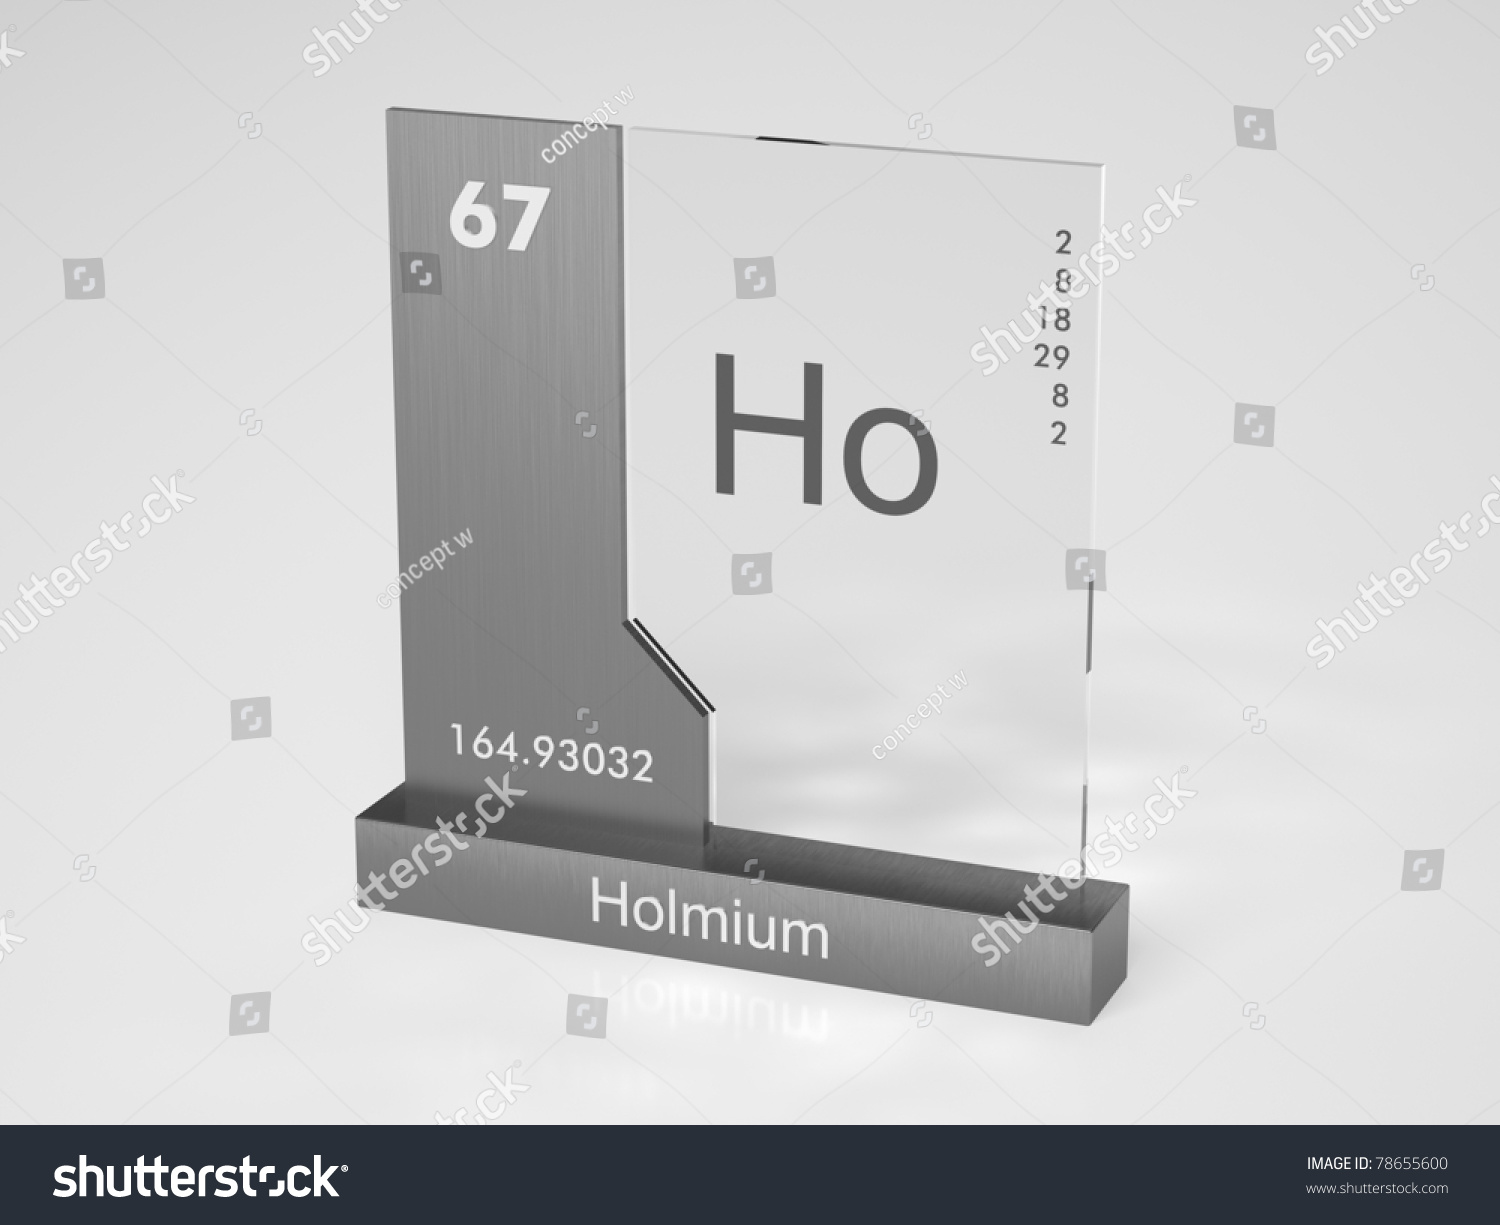 Holmium symbol ho chemical element periodic stock illustration holmium symbol ho chemical element of the periodic table gamestrikefo Gallery